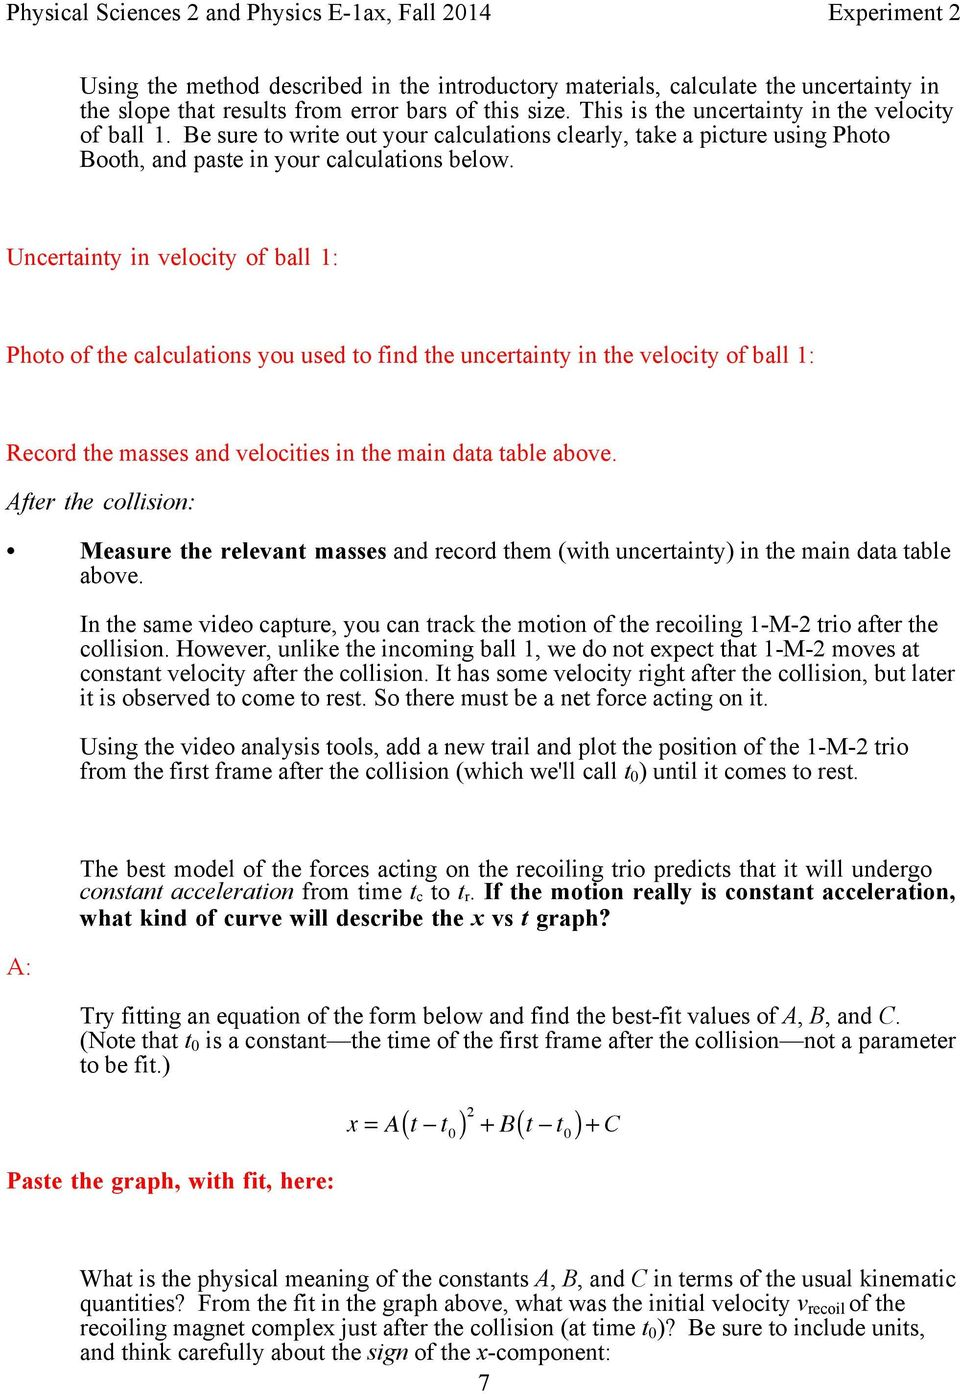 Uncertainty in velocity of ball 1: Photo of the calculations you used to find the uncertainty in the velocity of ball 1: Record the masses and velocities in the main data table above.